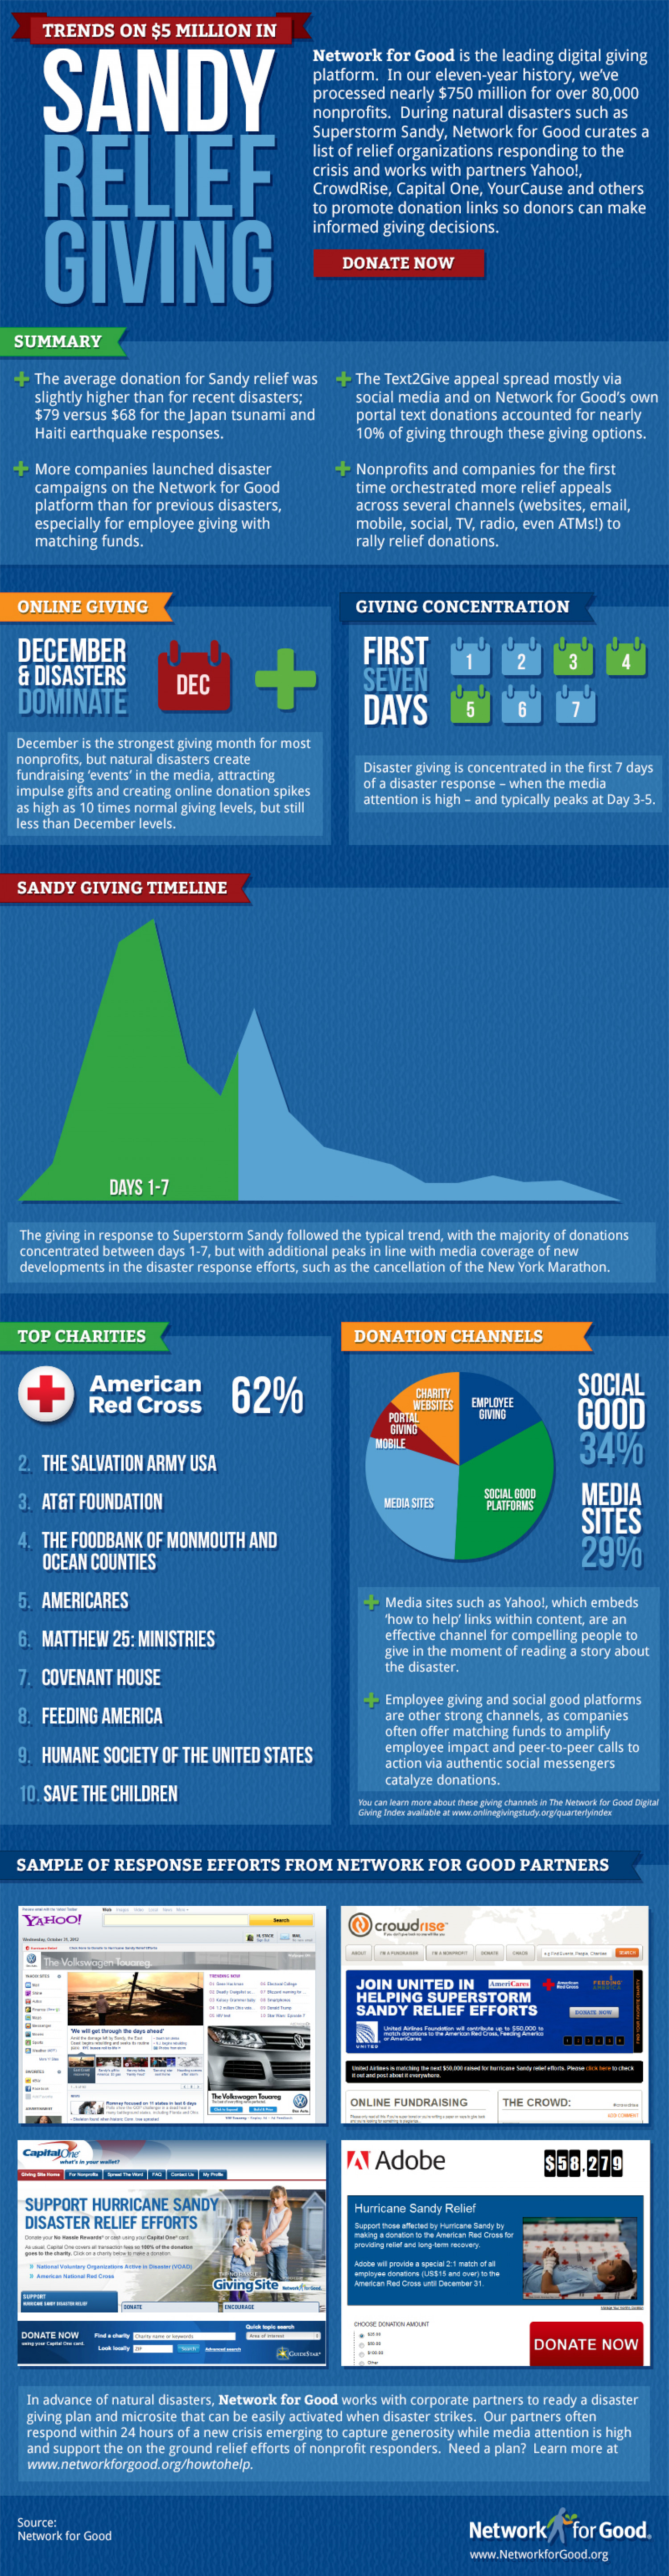 Trends on $5 Million in Sandy Relief Giving Infographic